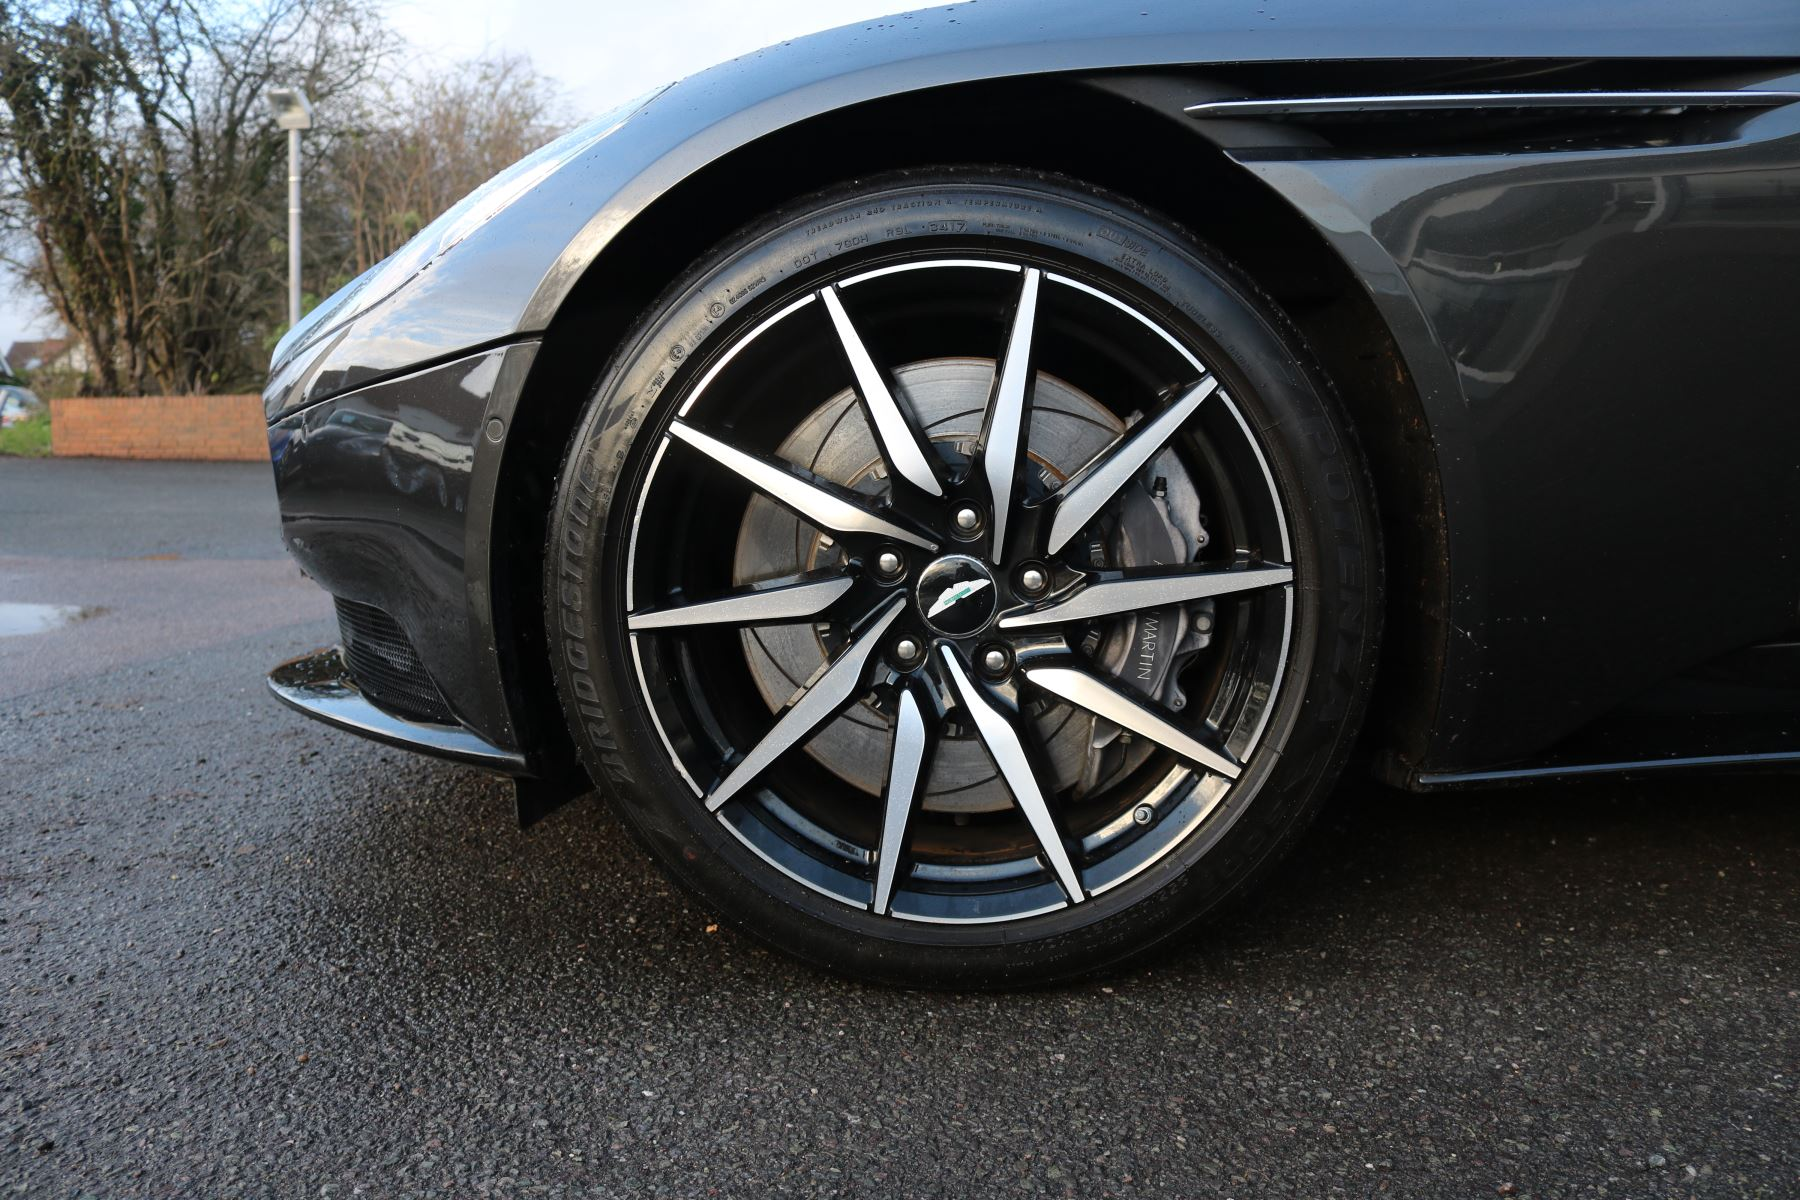 Aston Martin DB11 V12 2dr Touchtronic image 21